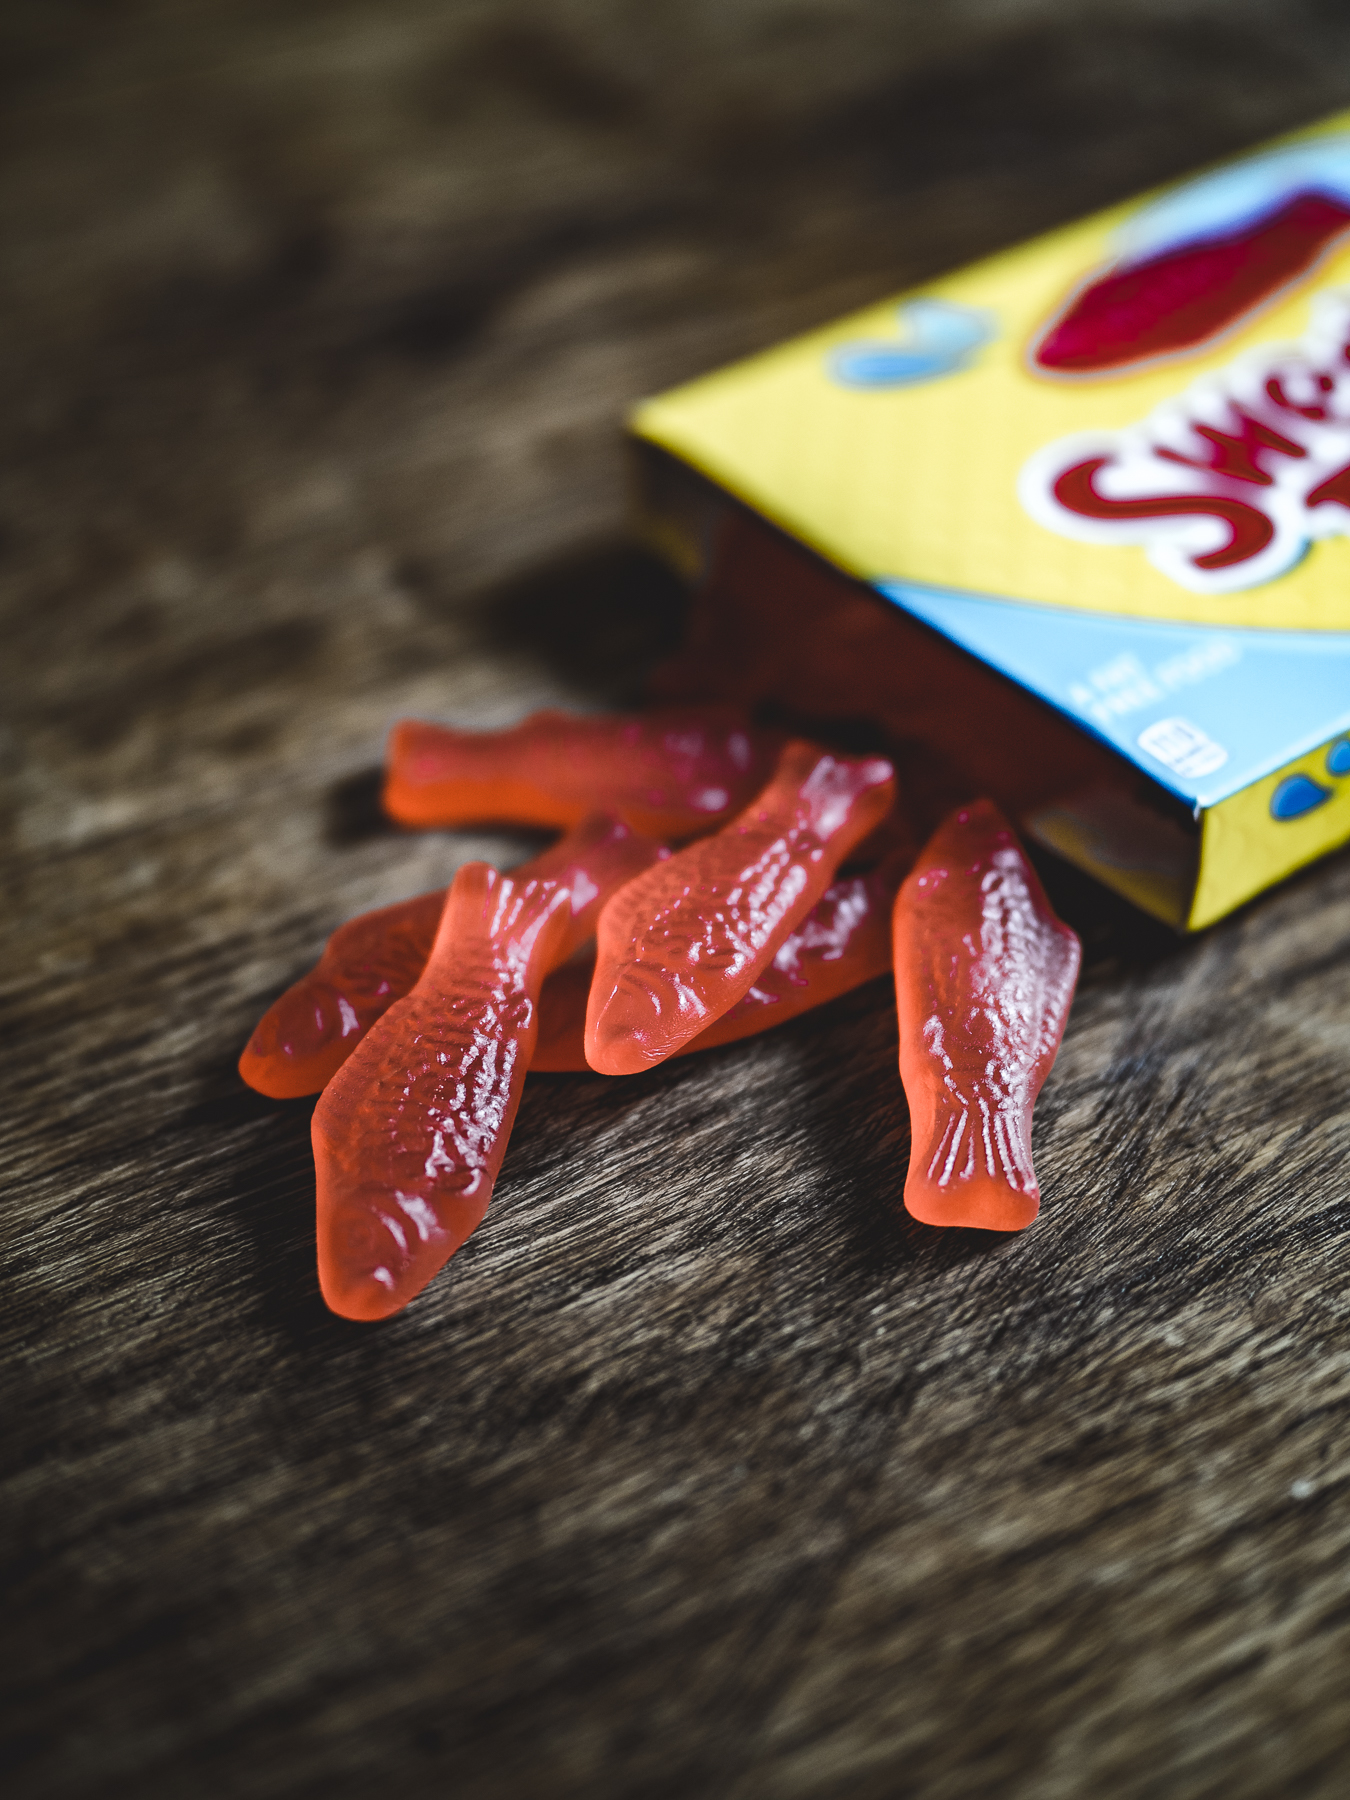 Swedish Fish Review